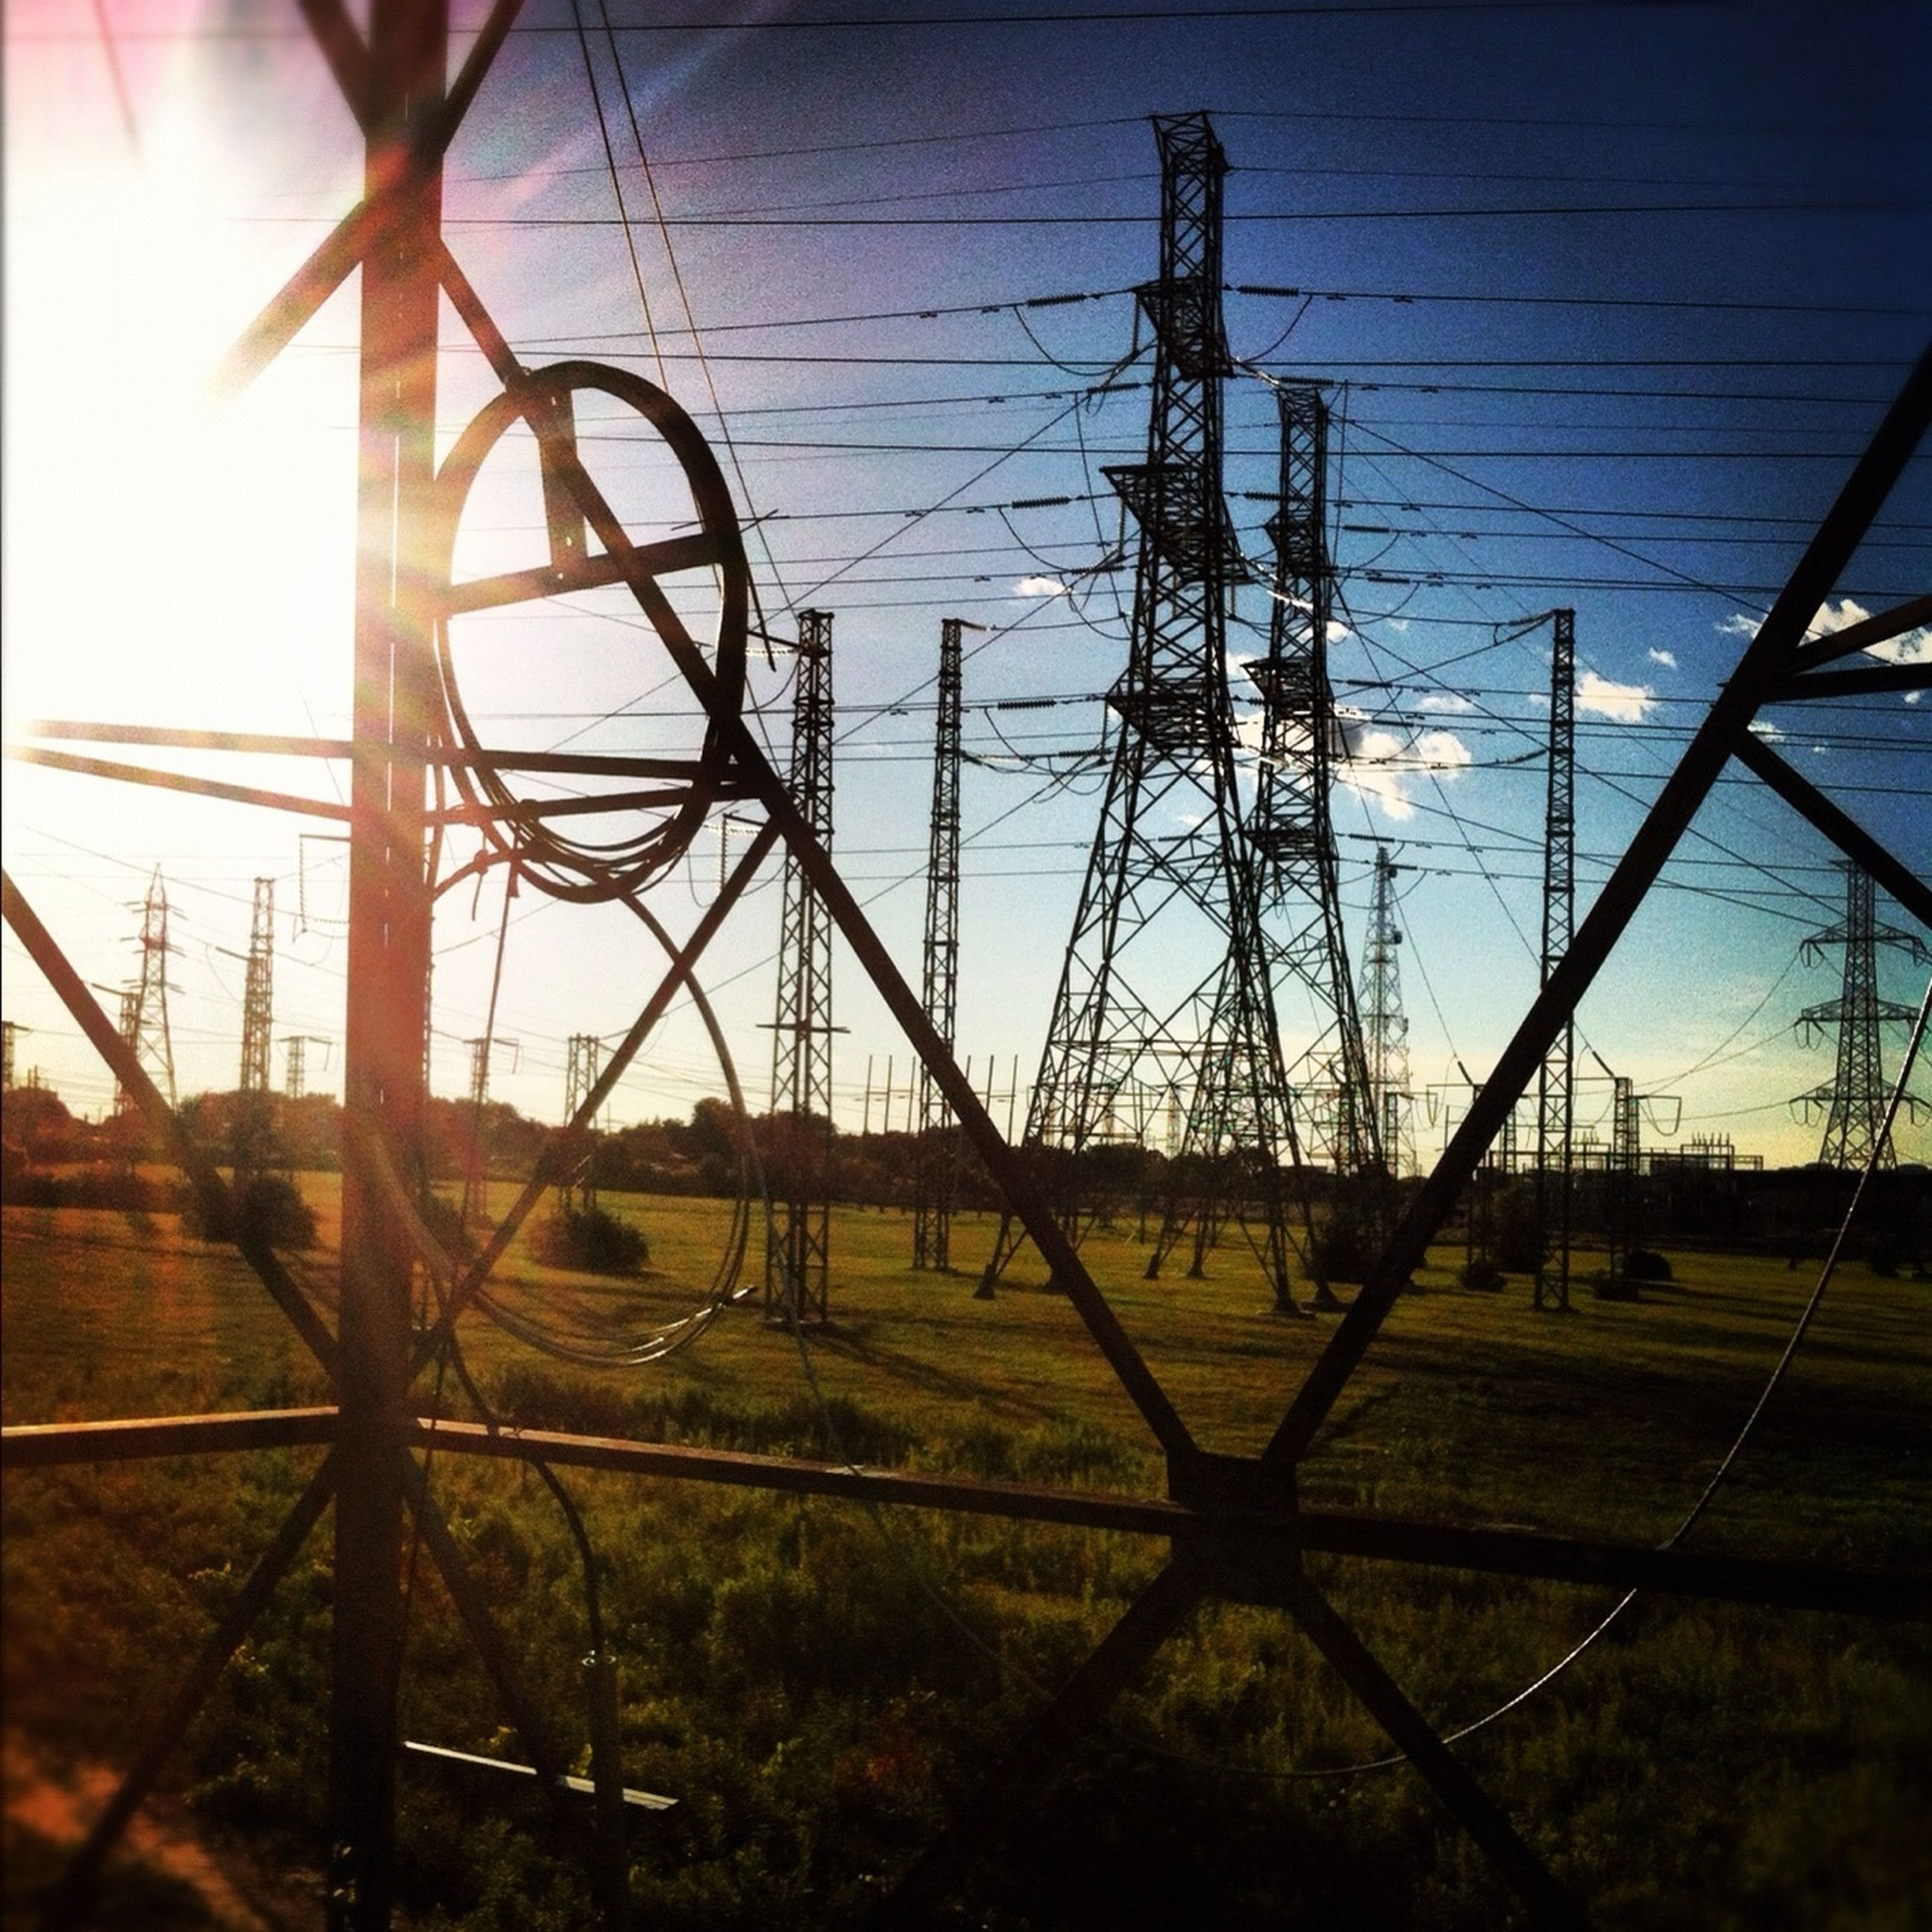 electricity pylon, power supply, electricity, sky, power line, connection, metal, transportation, field, cable, fuel and power generation, fence, grass, no people, outdoors, sunlight, chainlink fence, landscape, day, clear sky